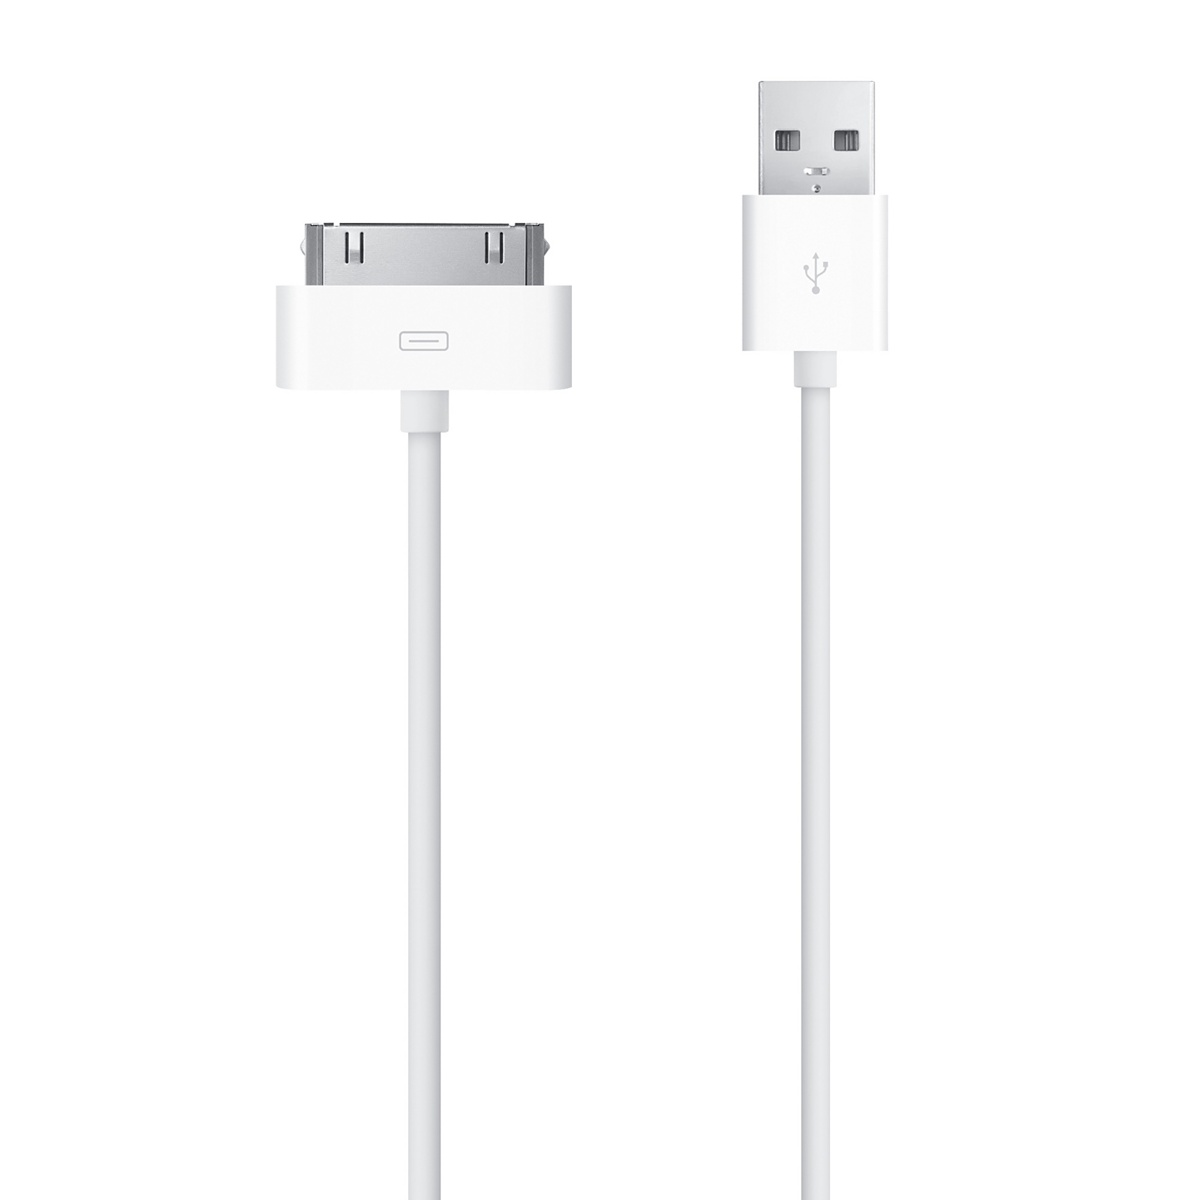 30 Pin USB Cable – 3 ft.